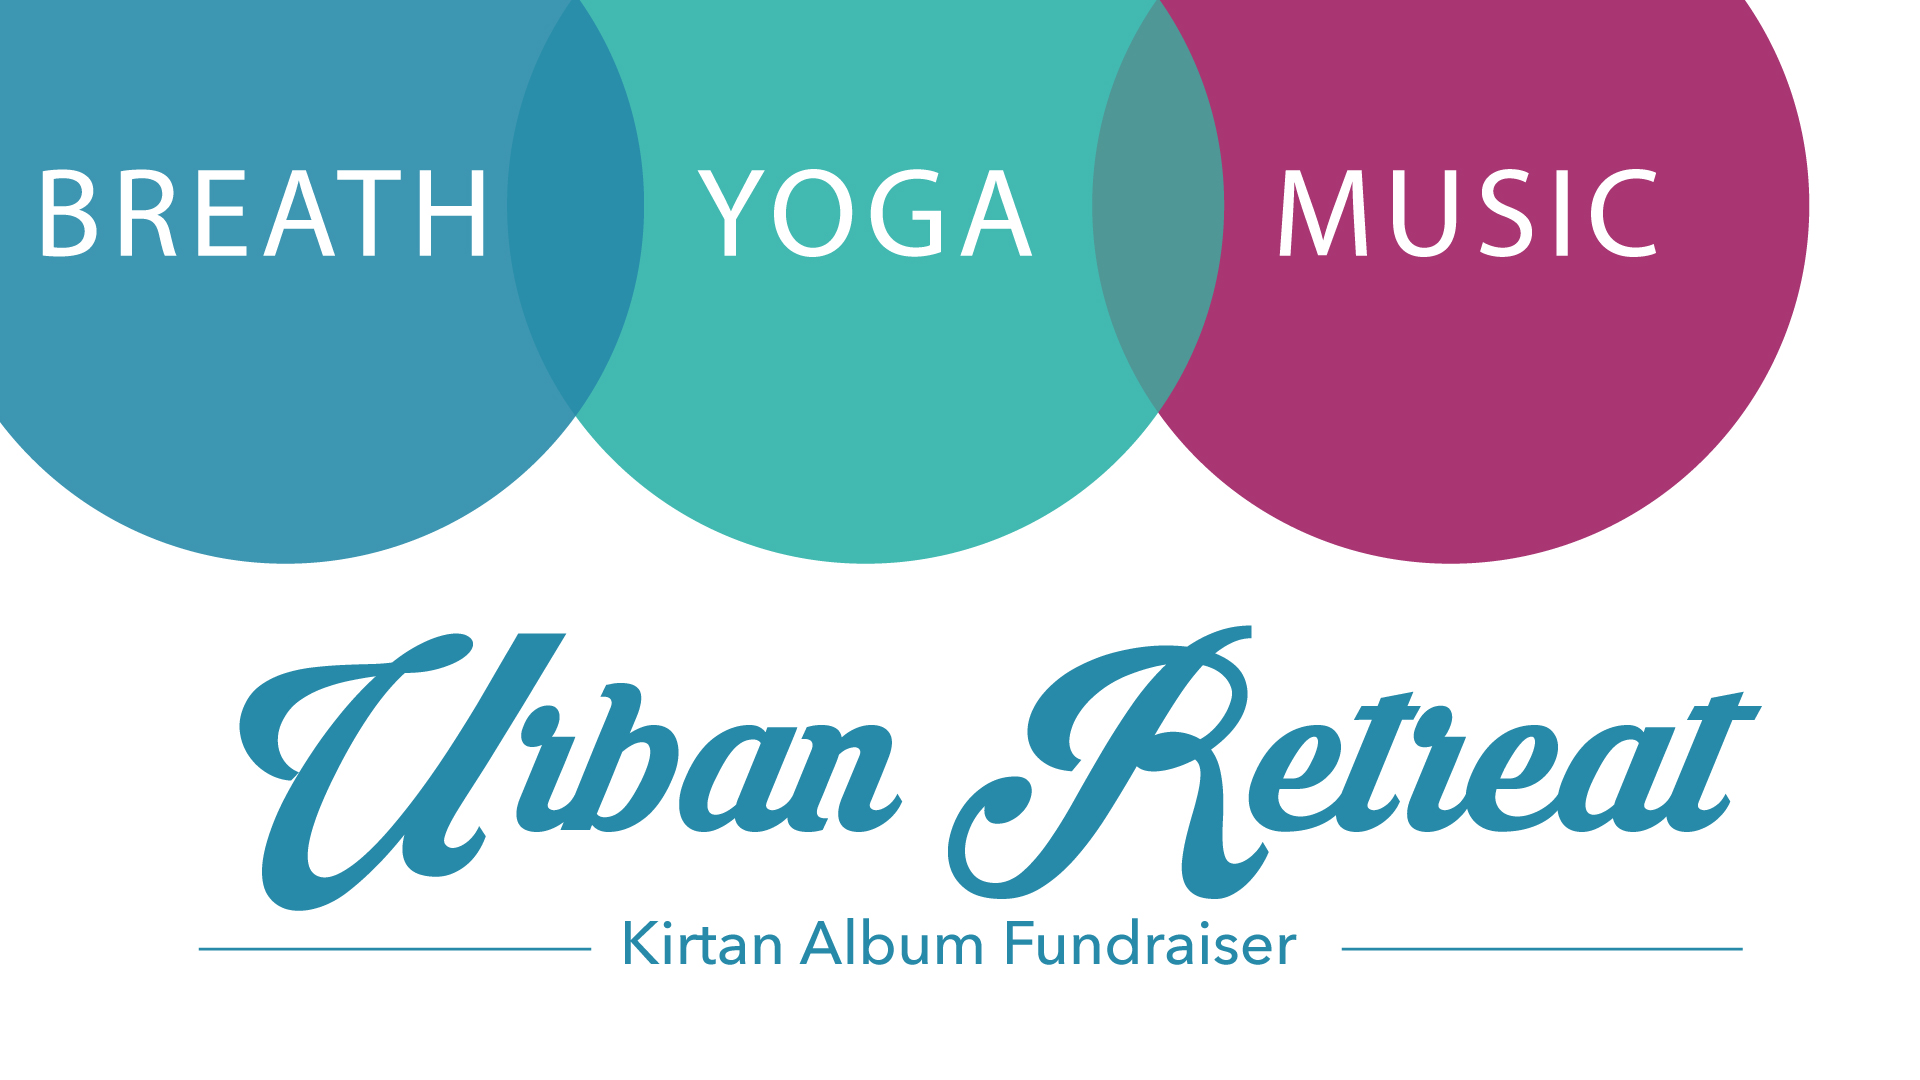 Tickets for Urban Retreat in Santa Monica from BrightStar Live Events